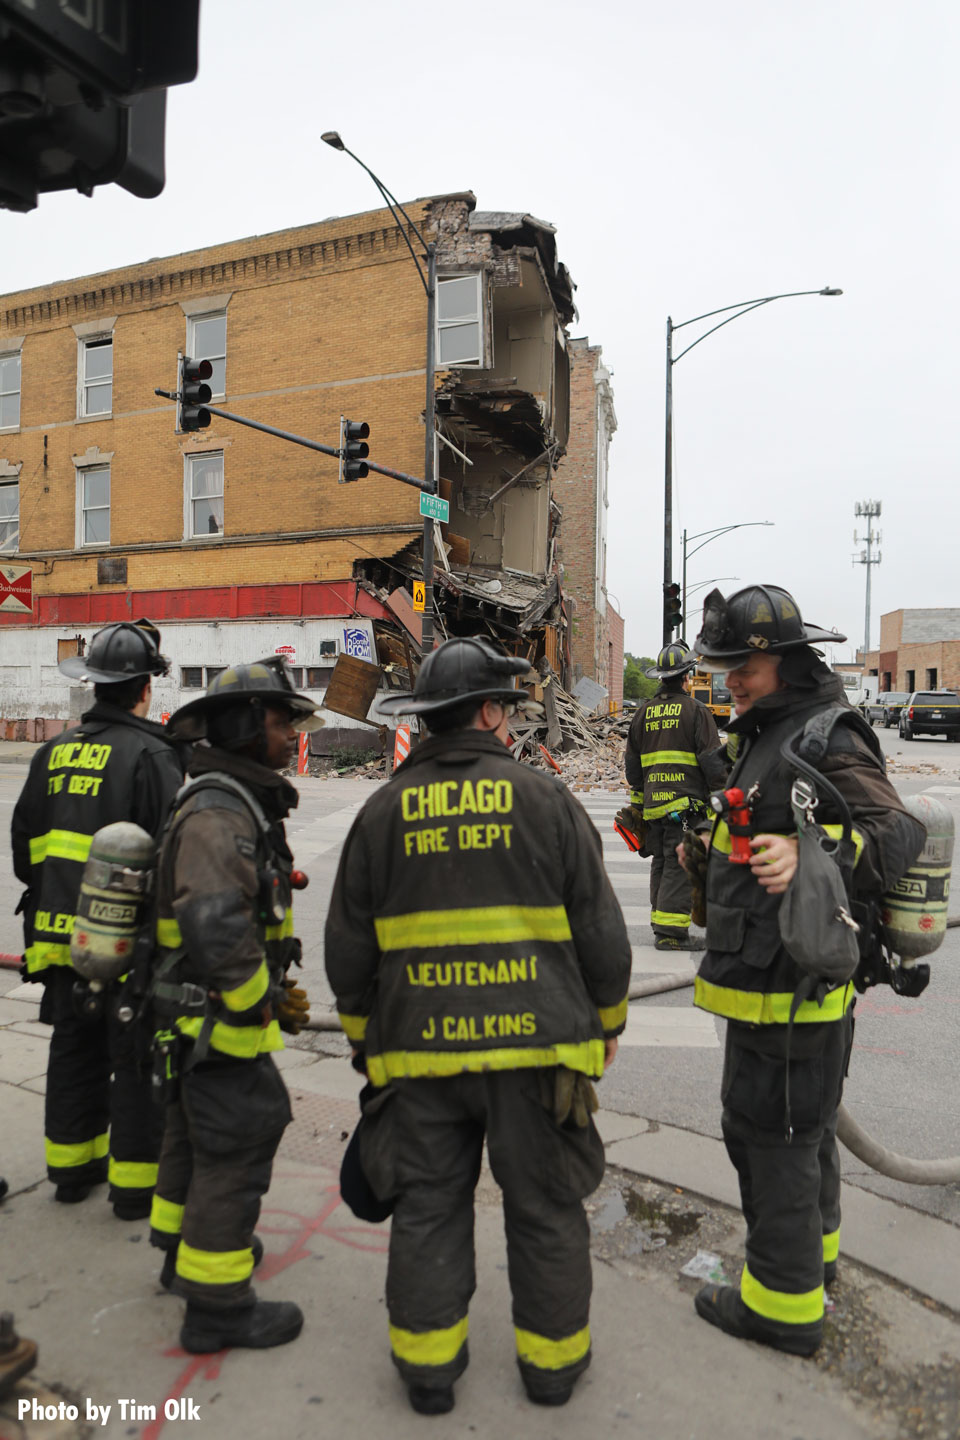 Members of the Chicago Fire Department confer about the incident.